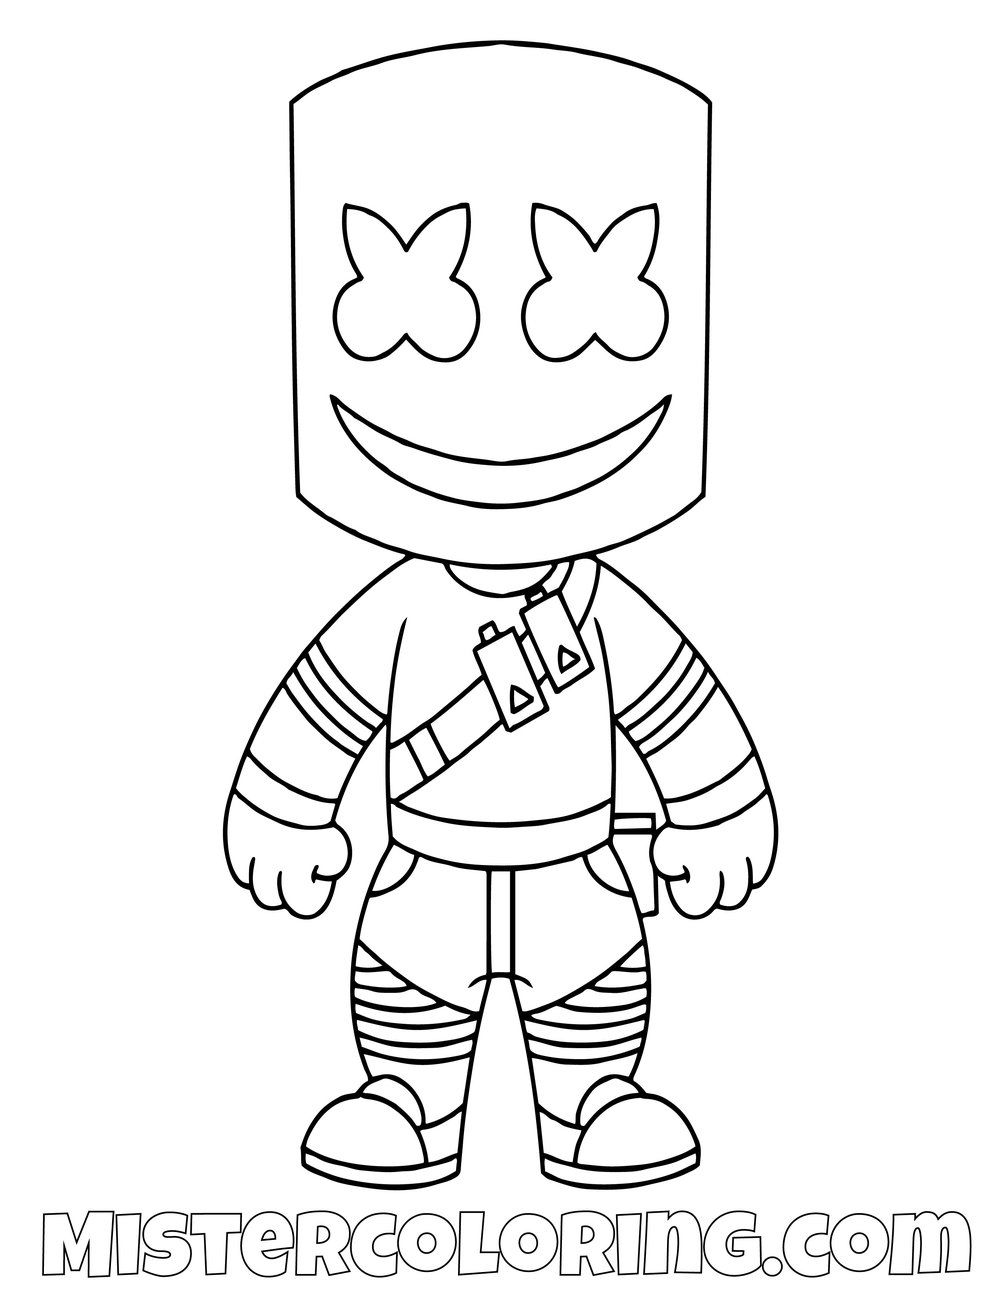 coloring pages of marshmallows - photo#12